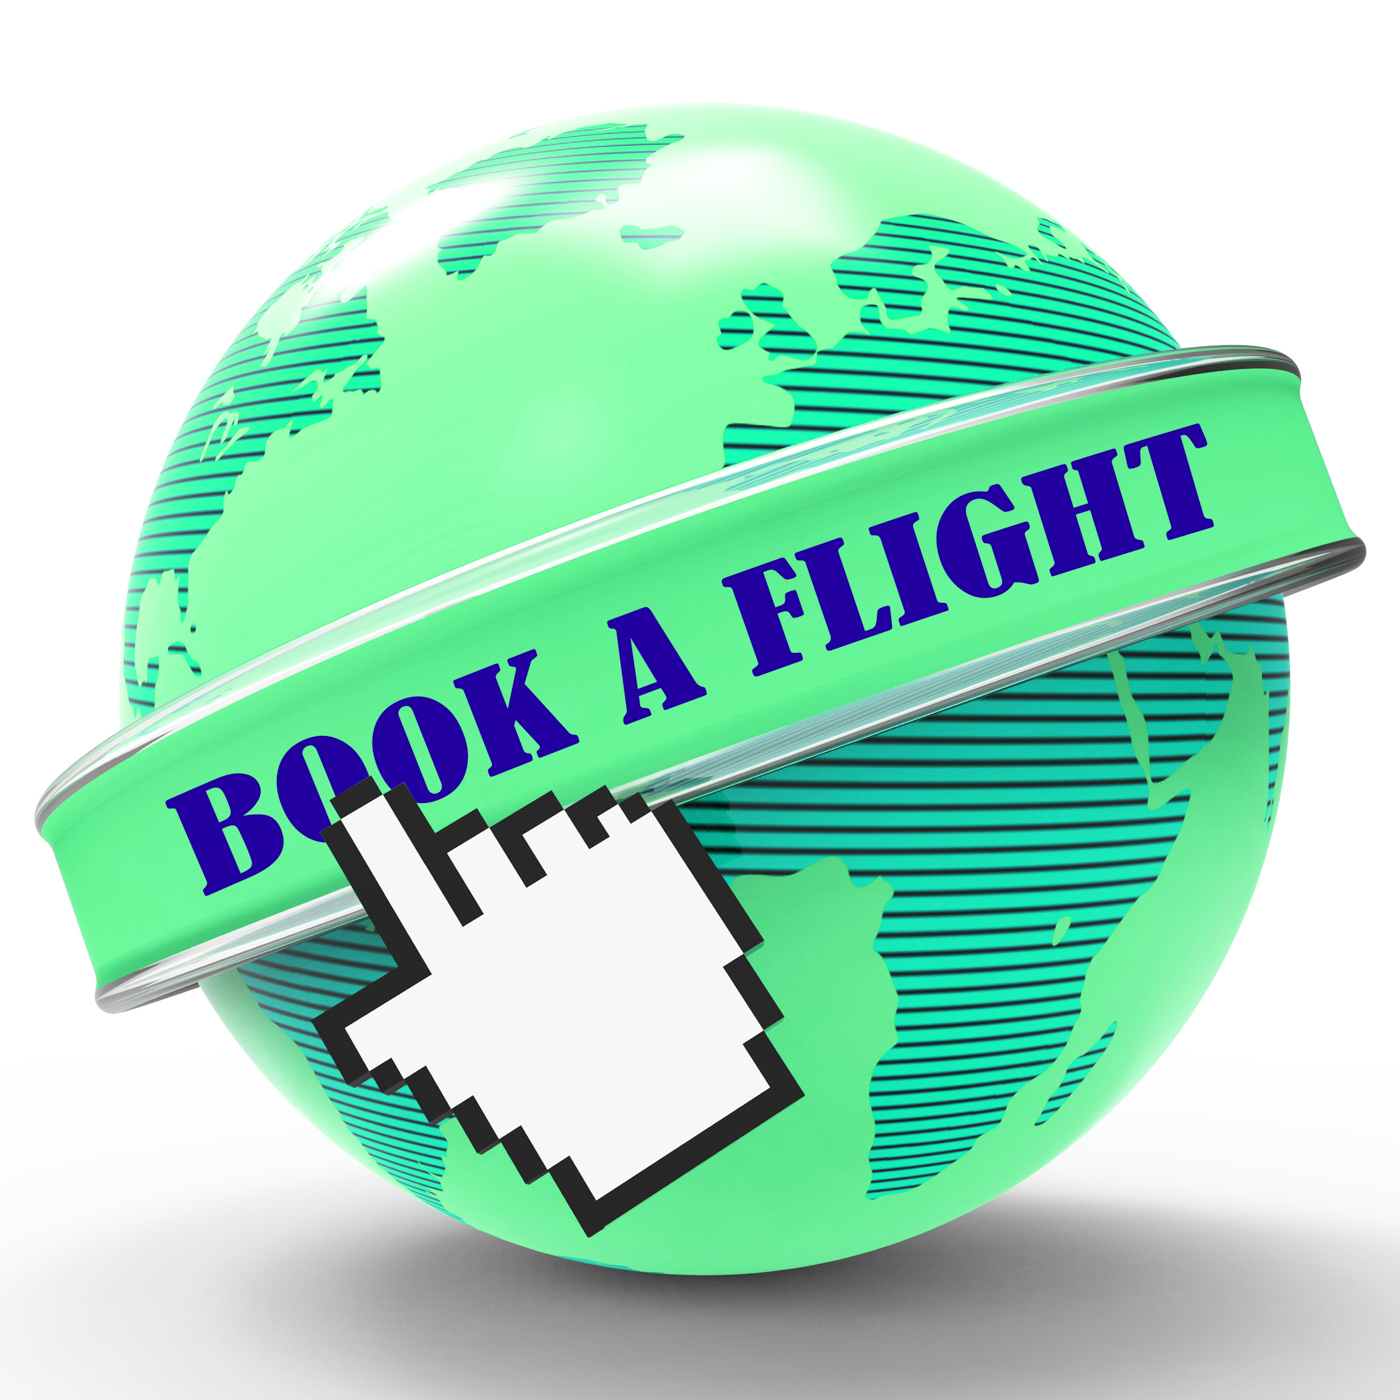 Book flight means travel aircraft and reserved photo